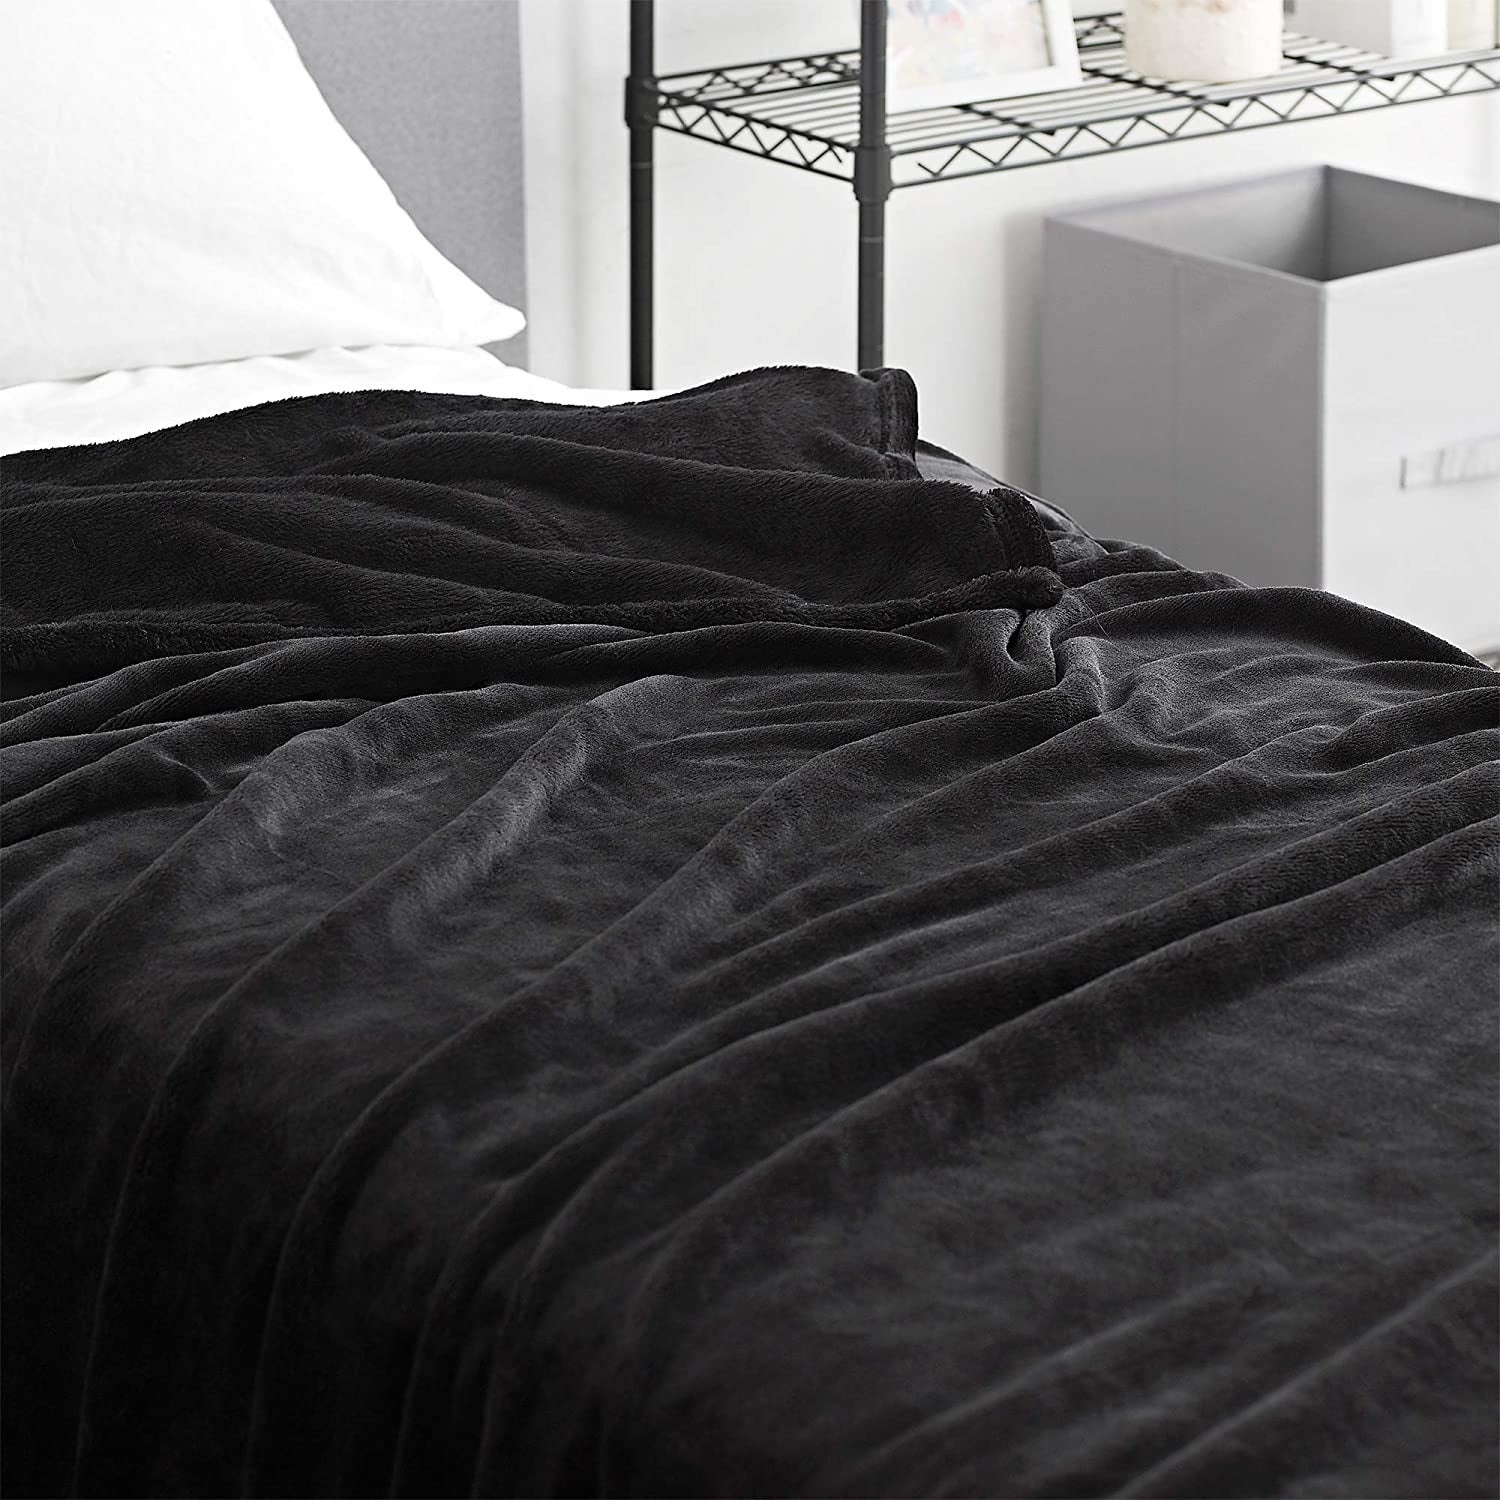 Byourbed Me Sooo Comfy Bedding Blanket On Sale Overstock 14680097